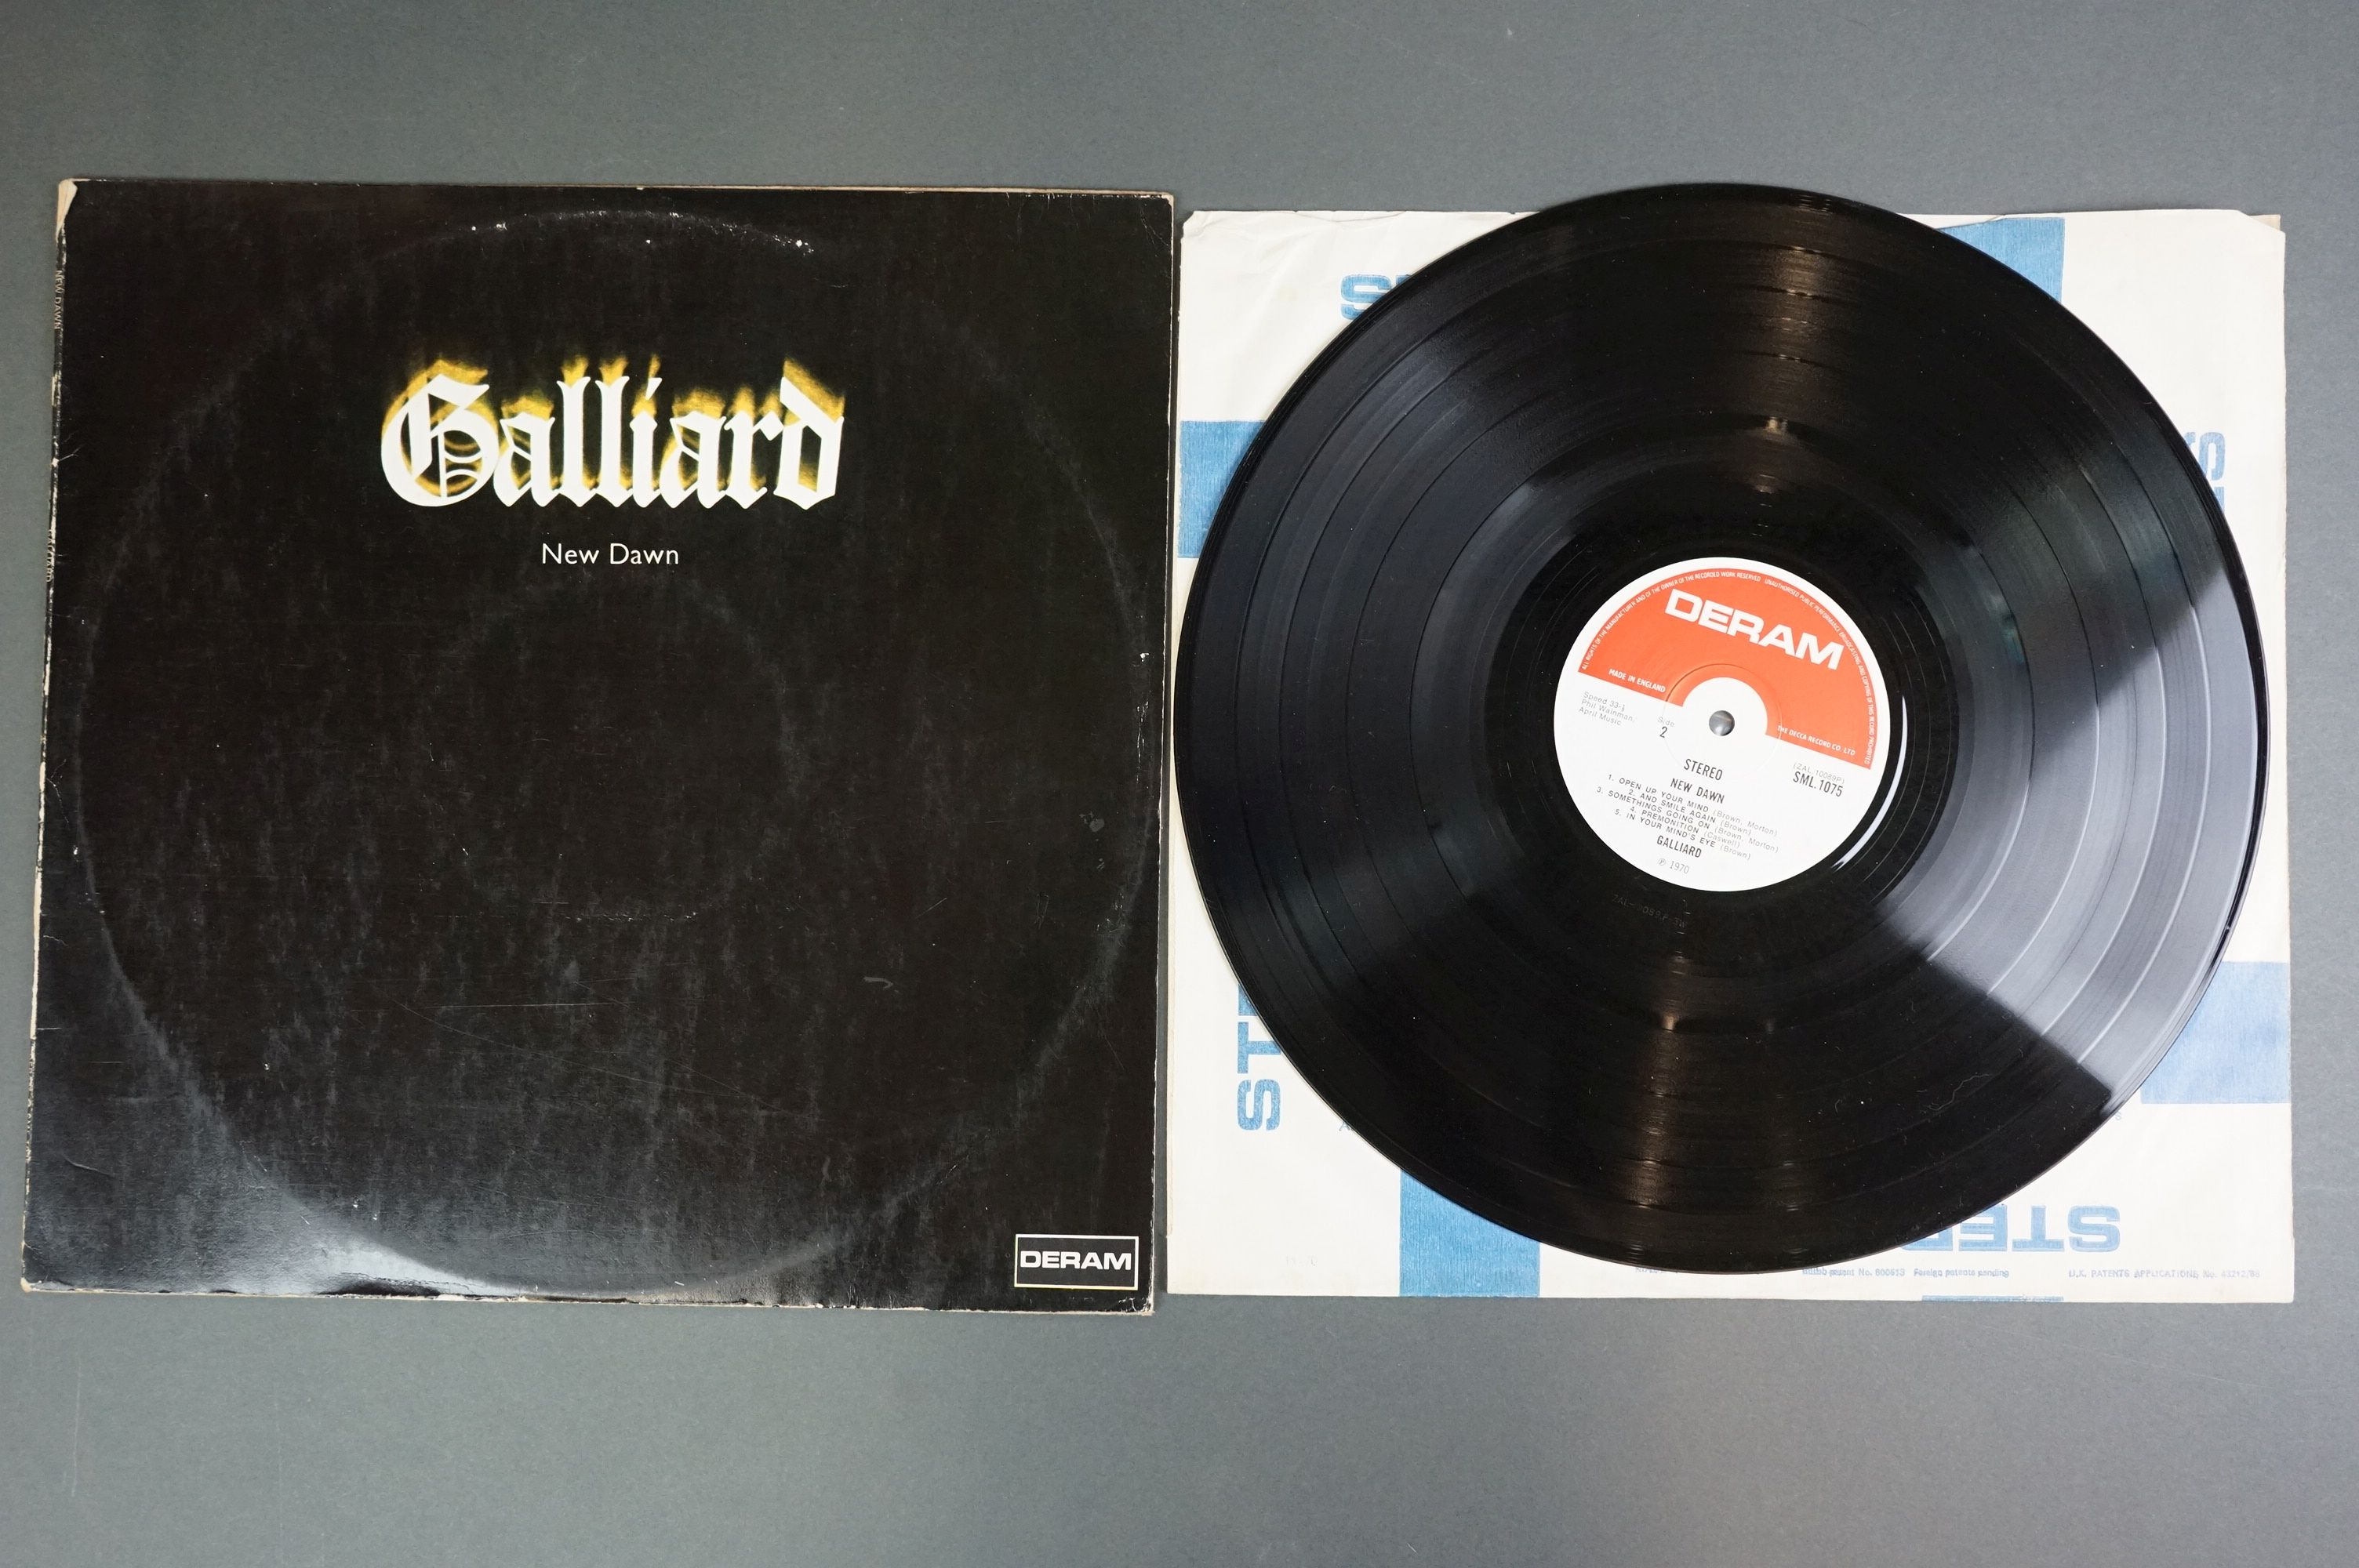 Vinyl - Galliard New Dawn SML1075 LP with red and white Deram label, small logo, sleeve vg- with - Image 2 of 3